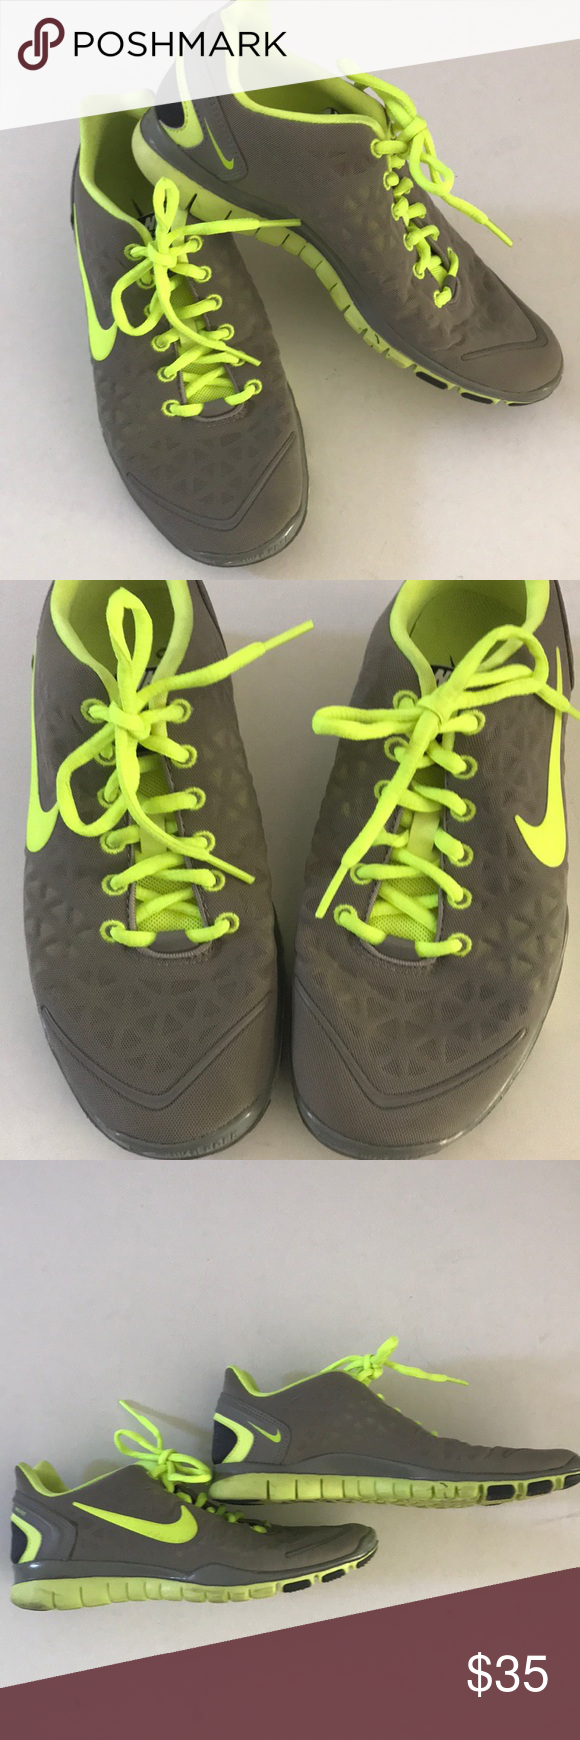 f9efa242bceb Nike Free Fit 2 Training Sneaker. Rubber sole. Strategically placed mesh  for breathability.